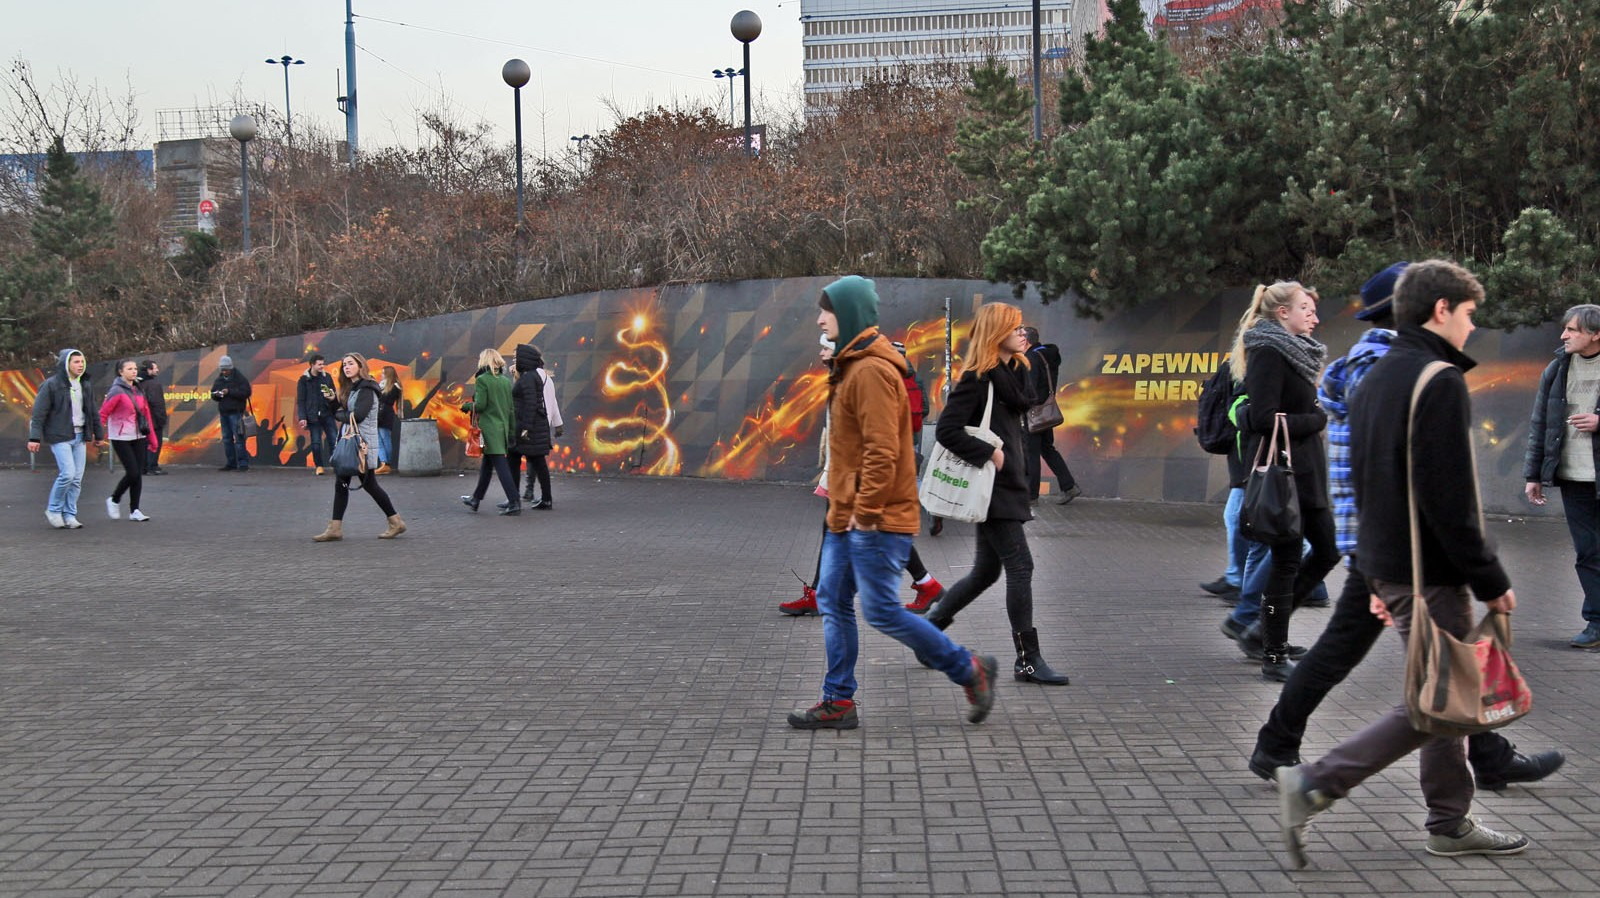 Square at centrum subway station in Warsaw mural on the wall | We provide energy | Portfolio